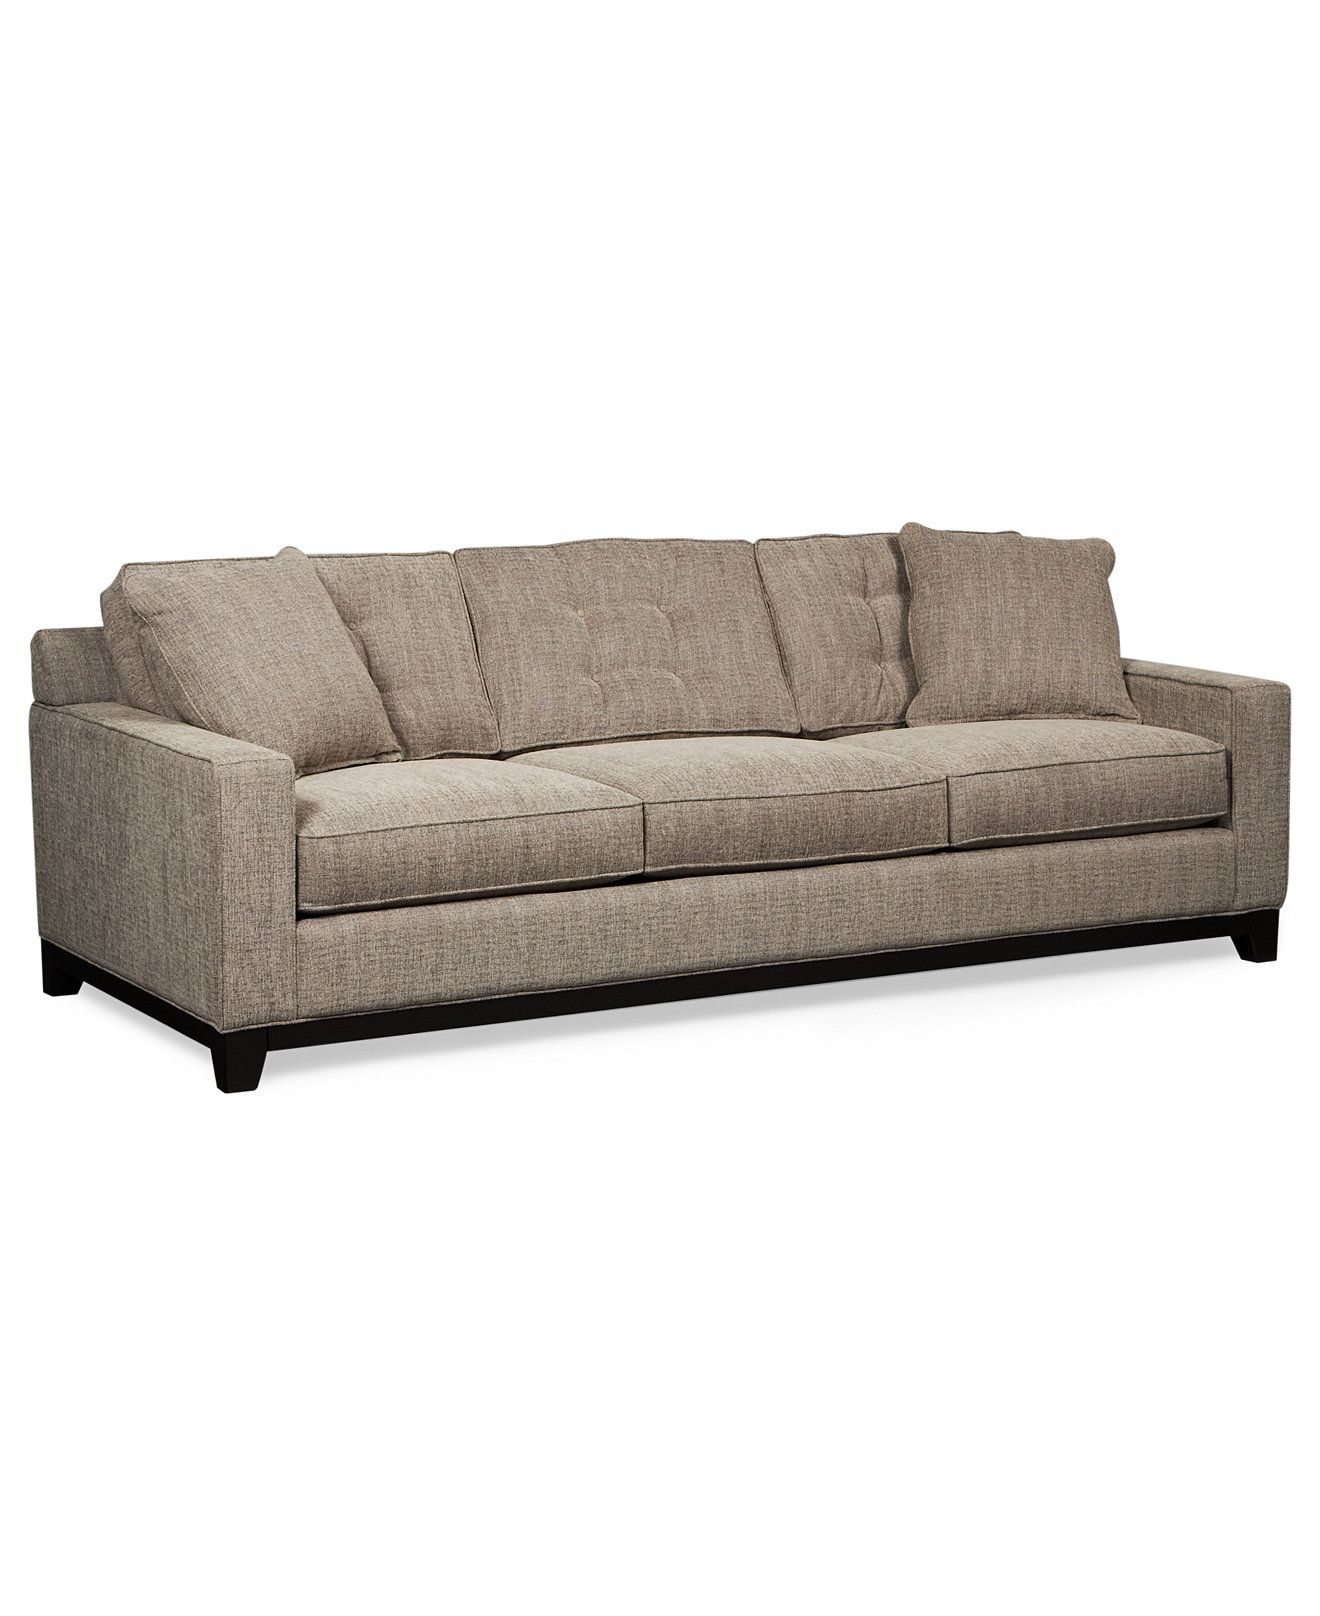 "3 A Rudin 2859 Sofa Custom length of 110"" Approximately $8000"